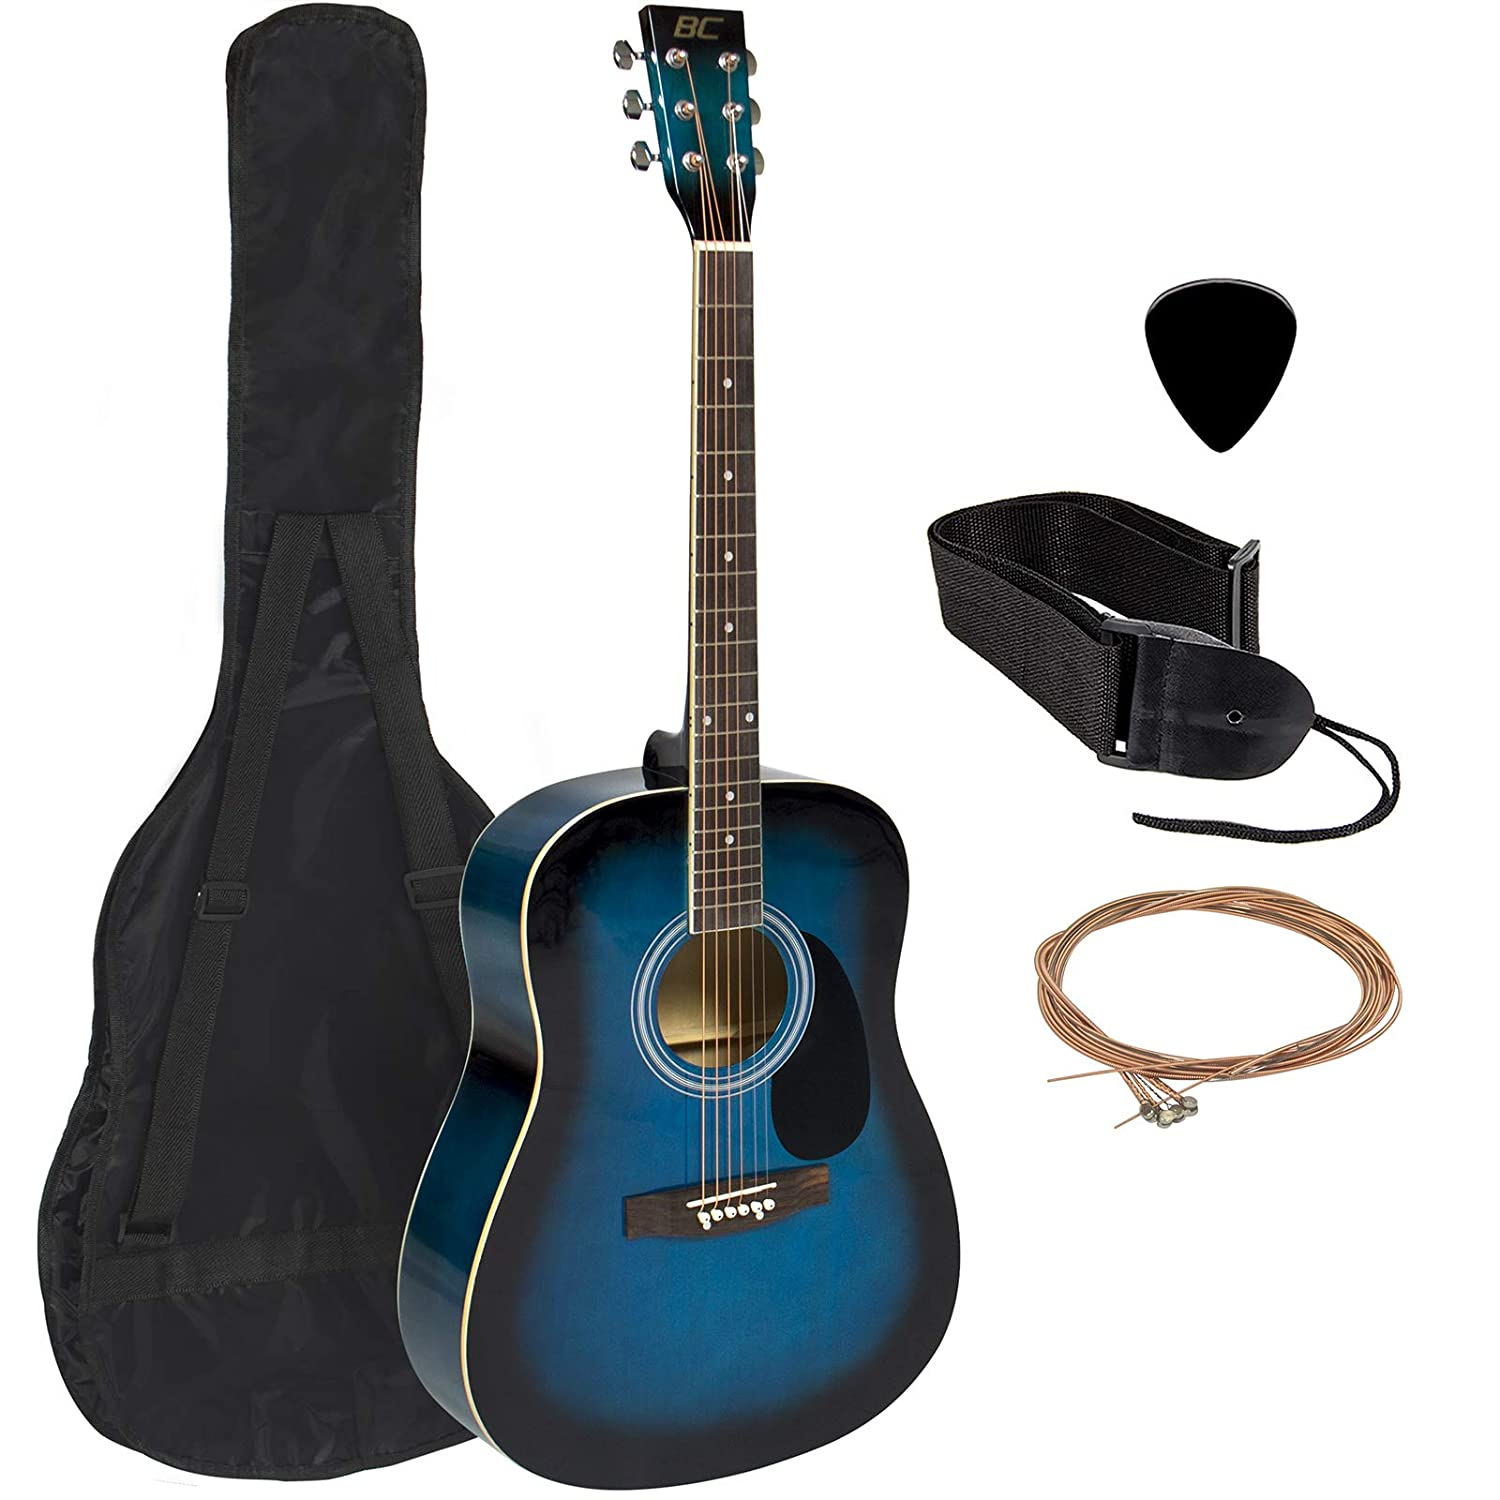 Best Choice Products 41in Full Size All-Wood Acoustic Guitar Starter Kit w/Case, Pick, Strap, Extra Strings - Natural Acoustic Guitar Packages-1080